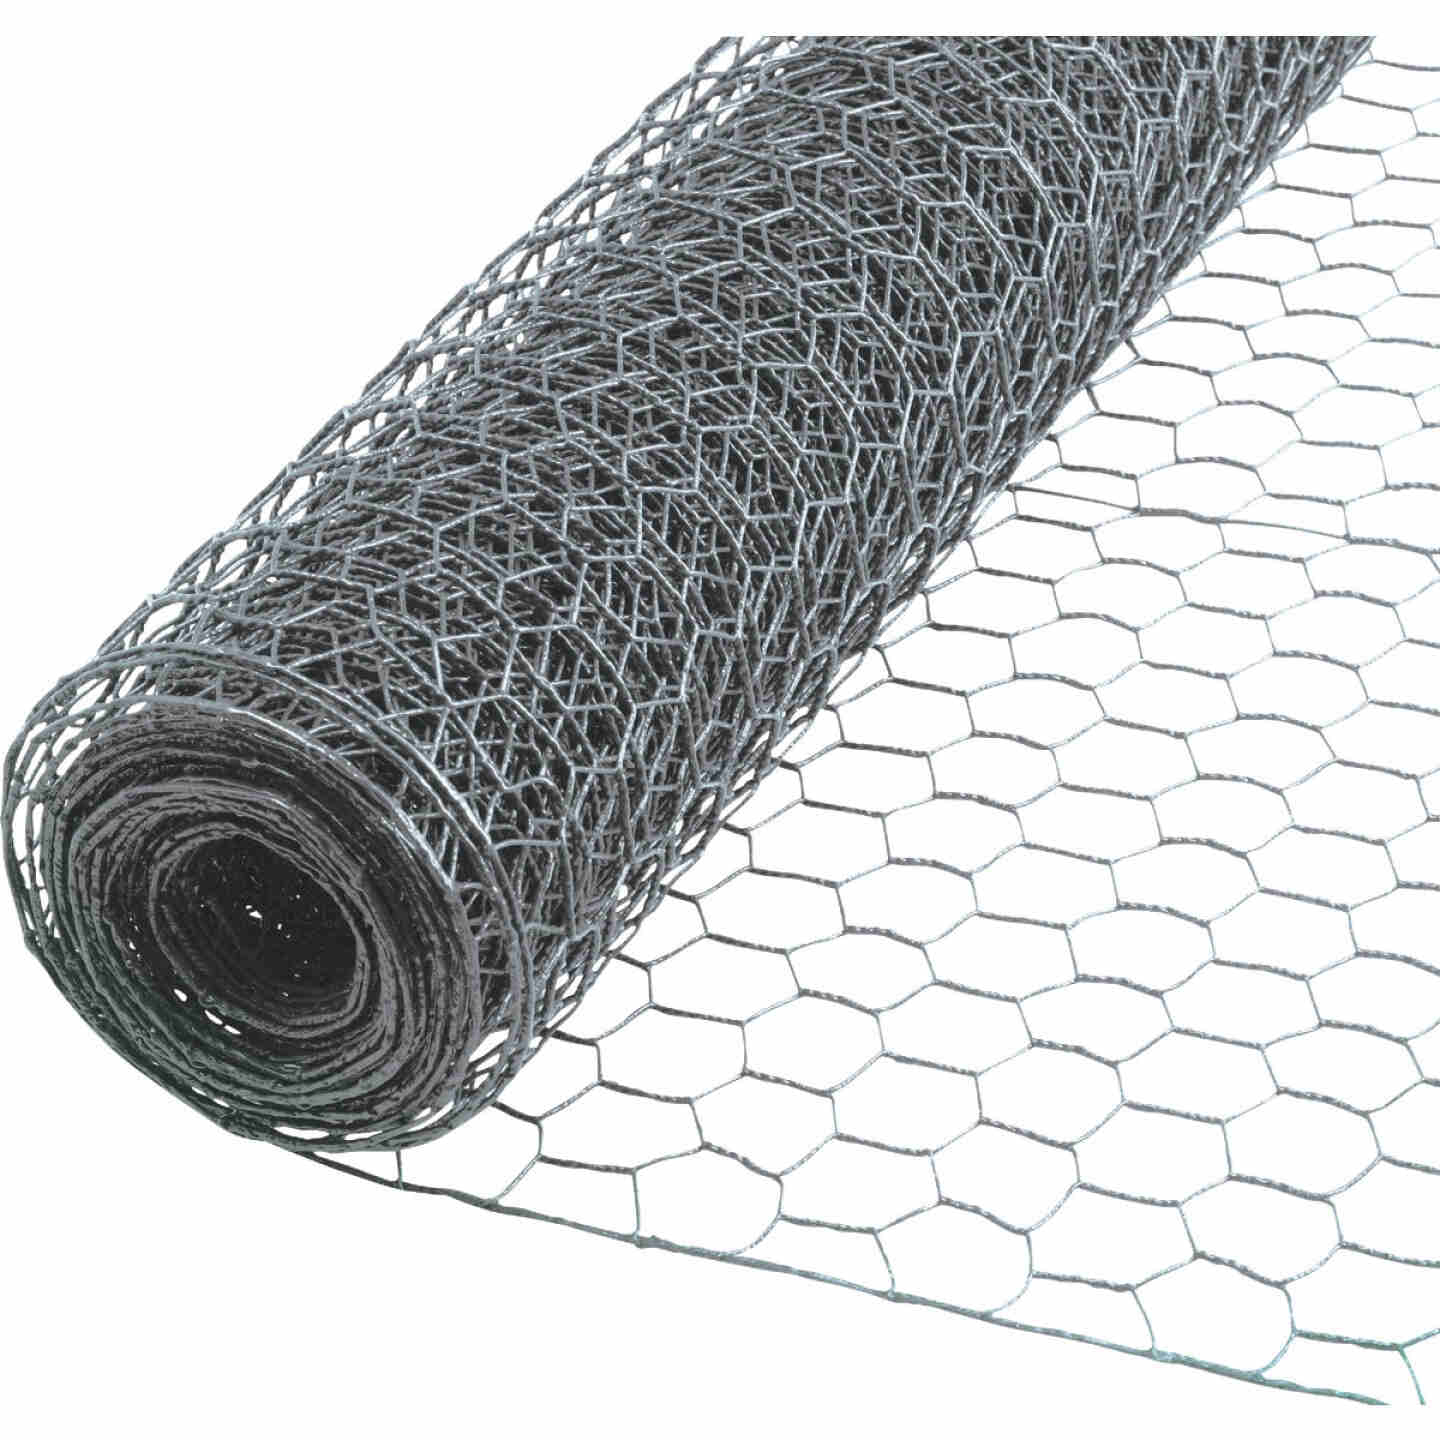 Do it 2 In. x 48 In. H. x 25 Ft. L. Hexagonal Wire Poultry Netting Image 1